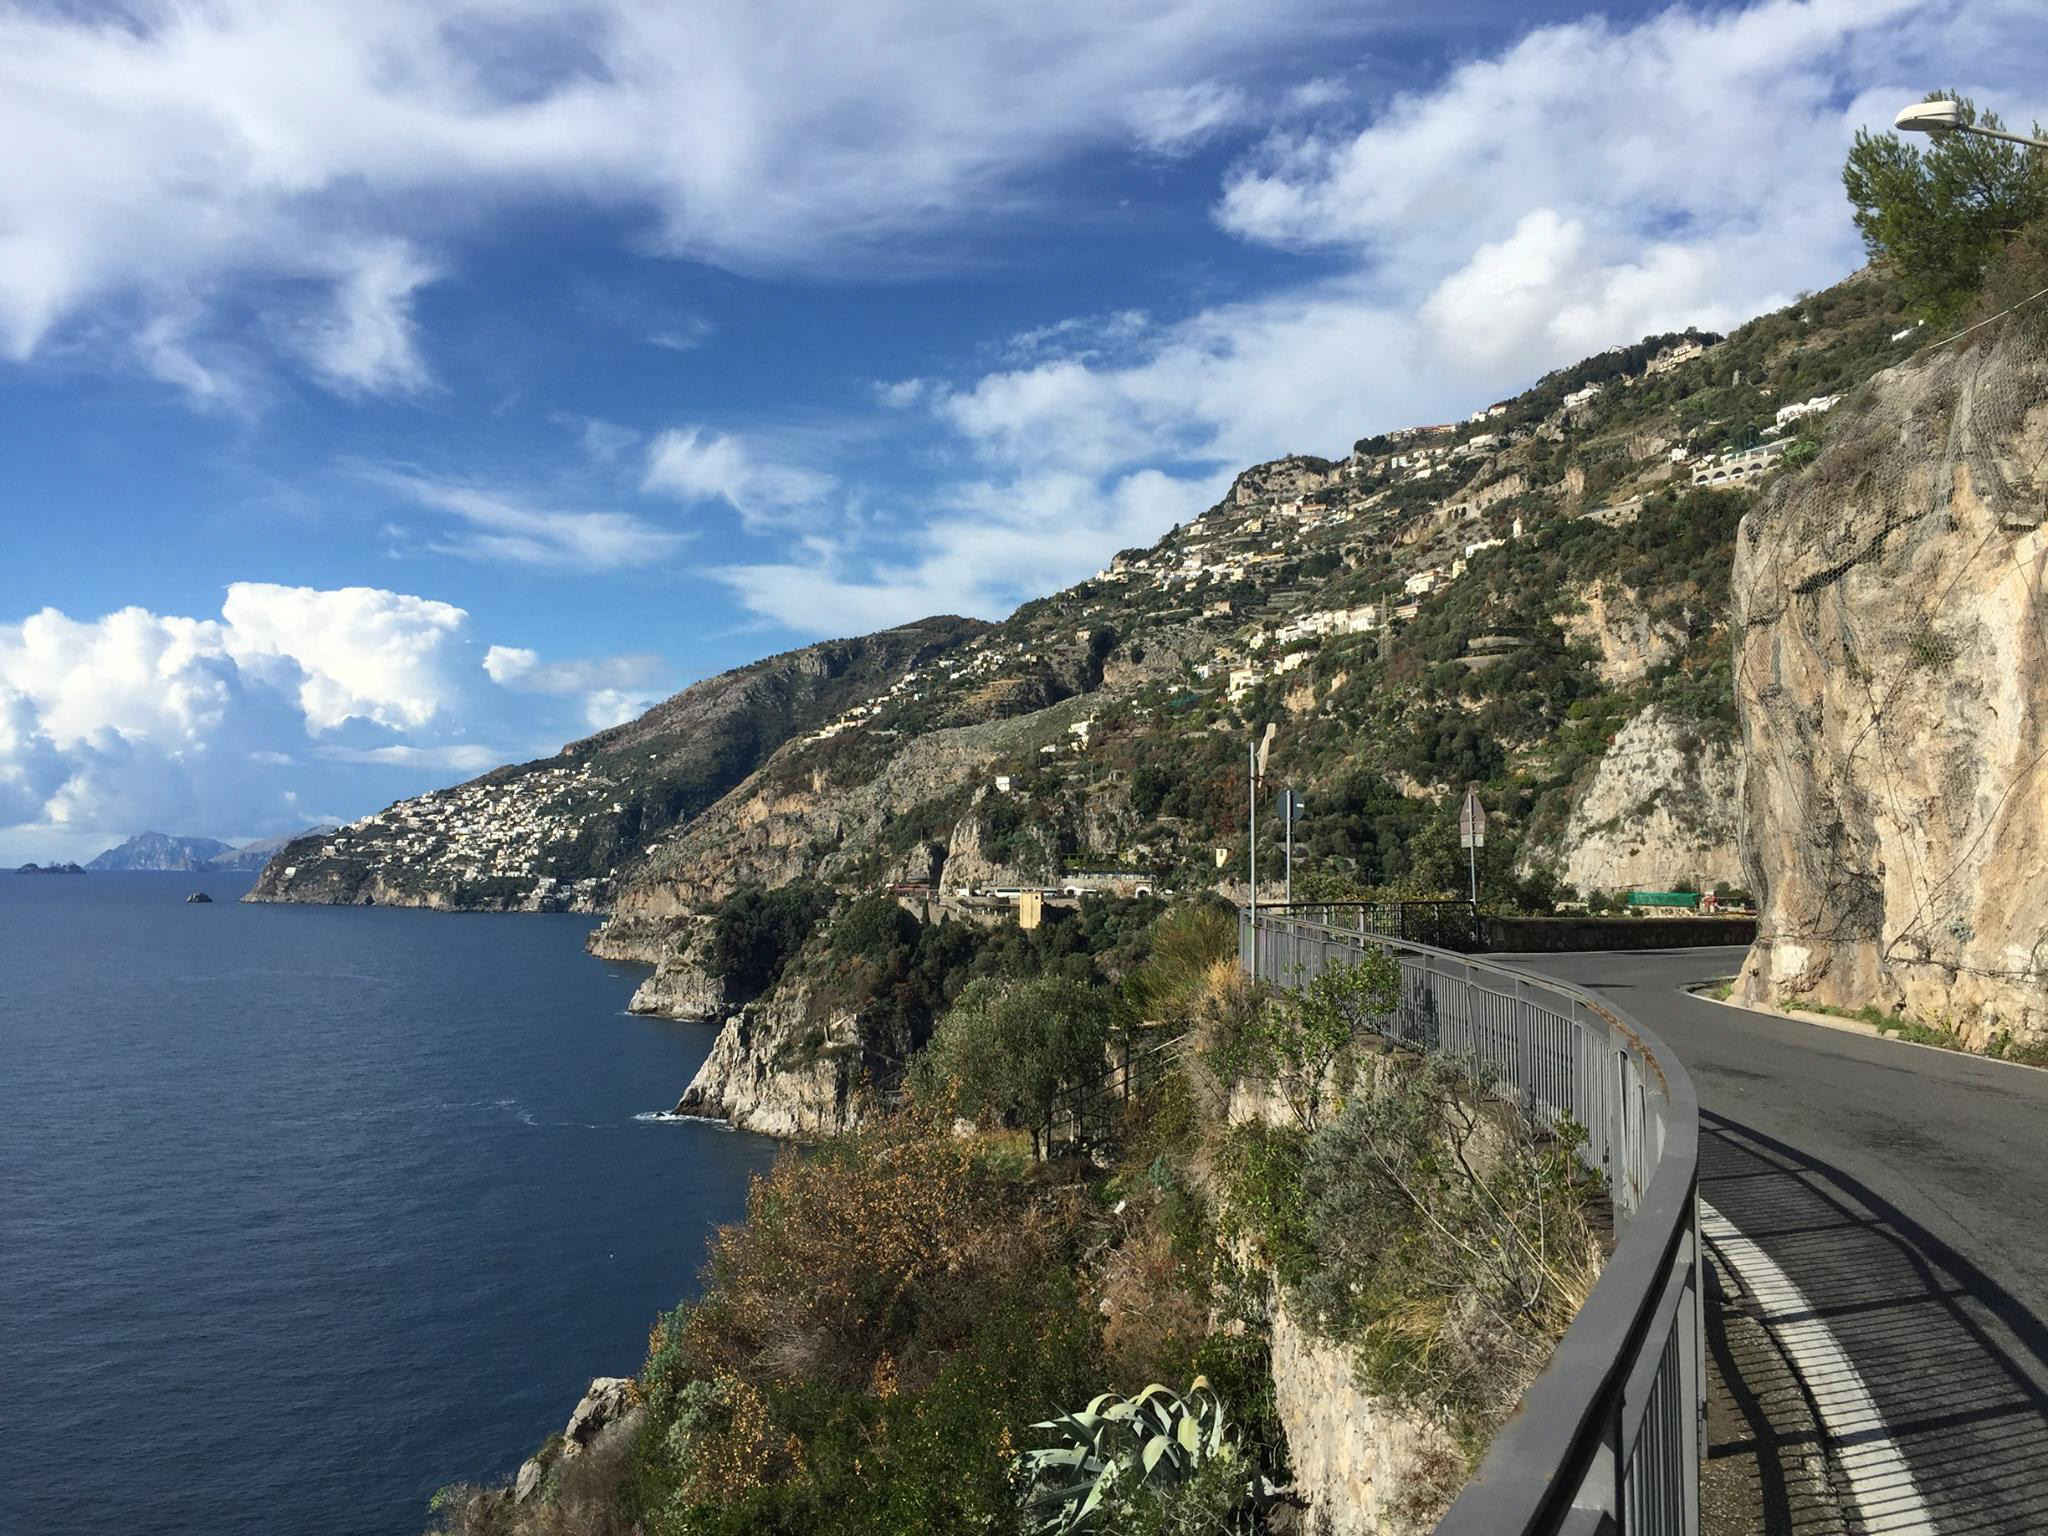 The Road to Positano, SS 163